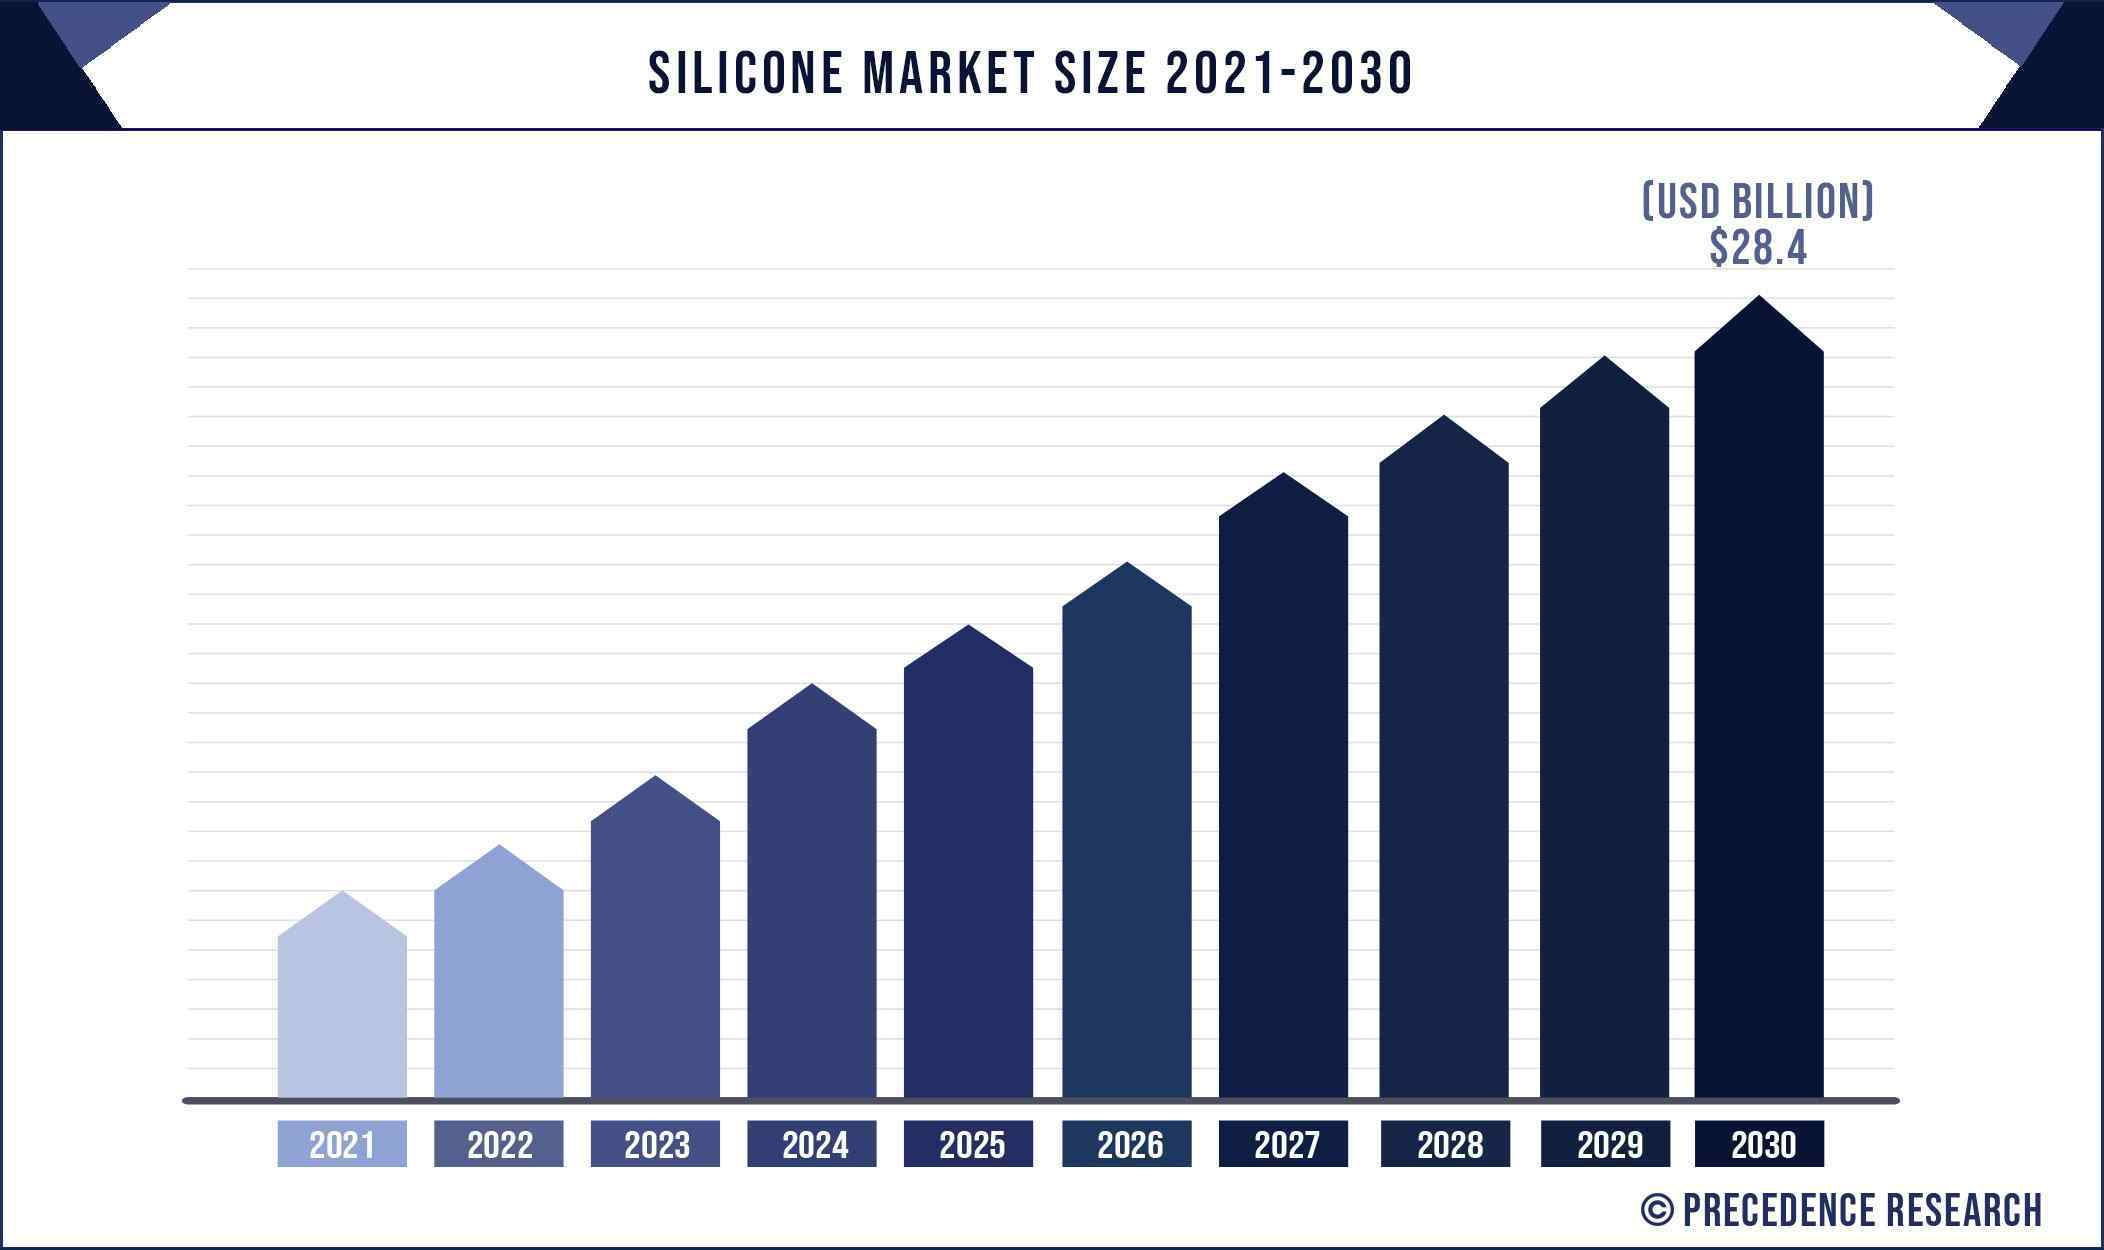 Silicone Market Size 2021 to 2030